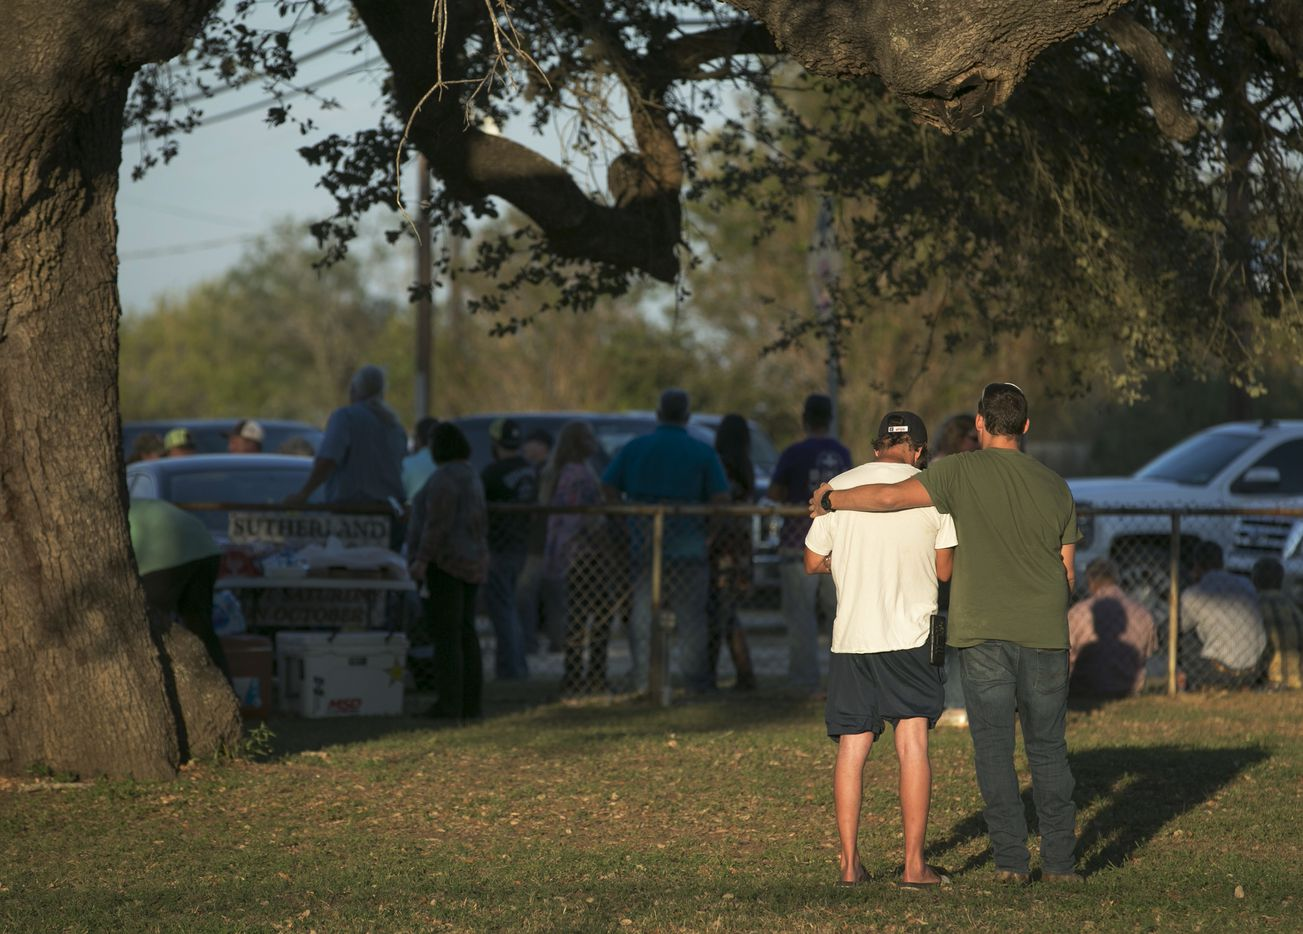 People comfort each other at a community center near the scene of a deadly shooting at the First Baptist Church in Sutherland Springs, Texas, Sunday, Nov. 5, 2017.